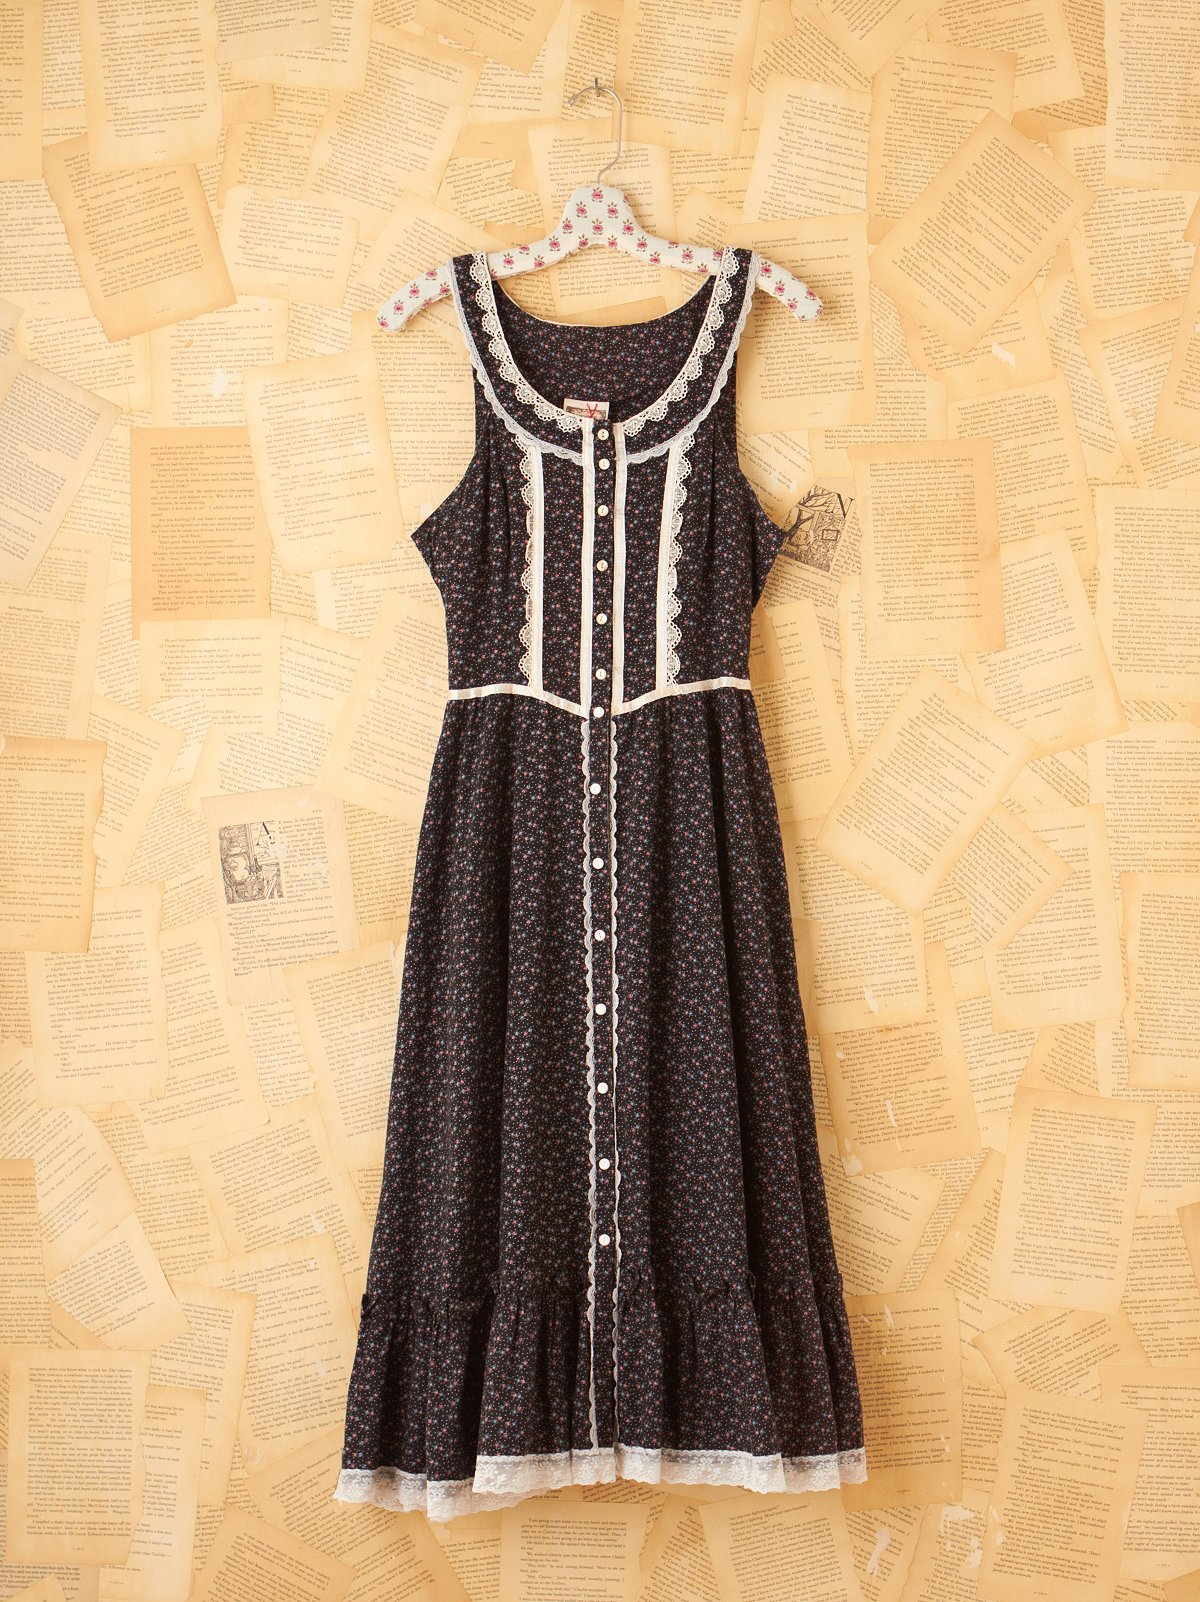 Vintage 70s Black Flowered Gunne Sax Frock